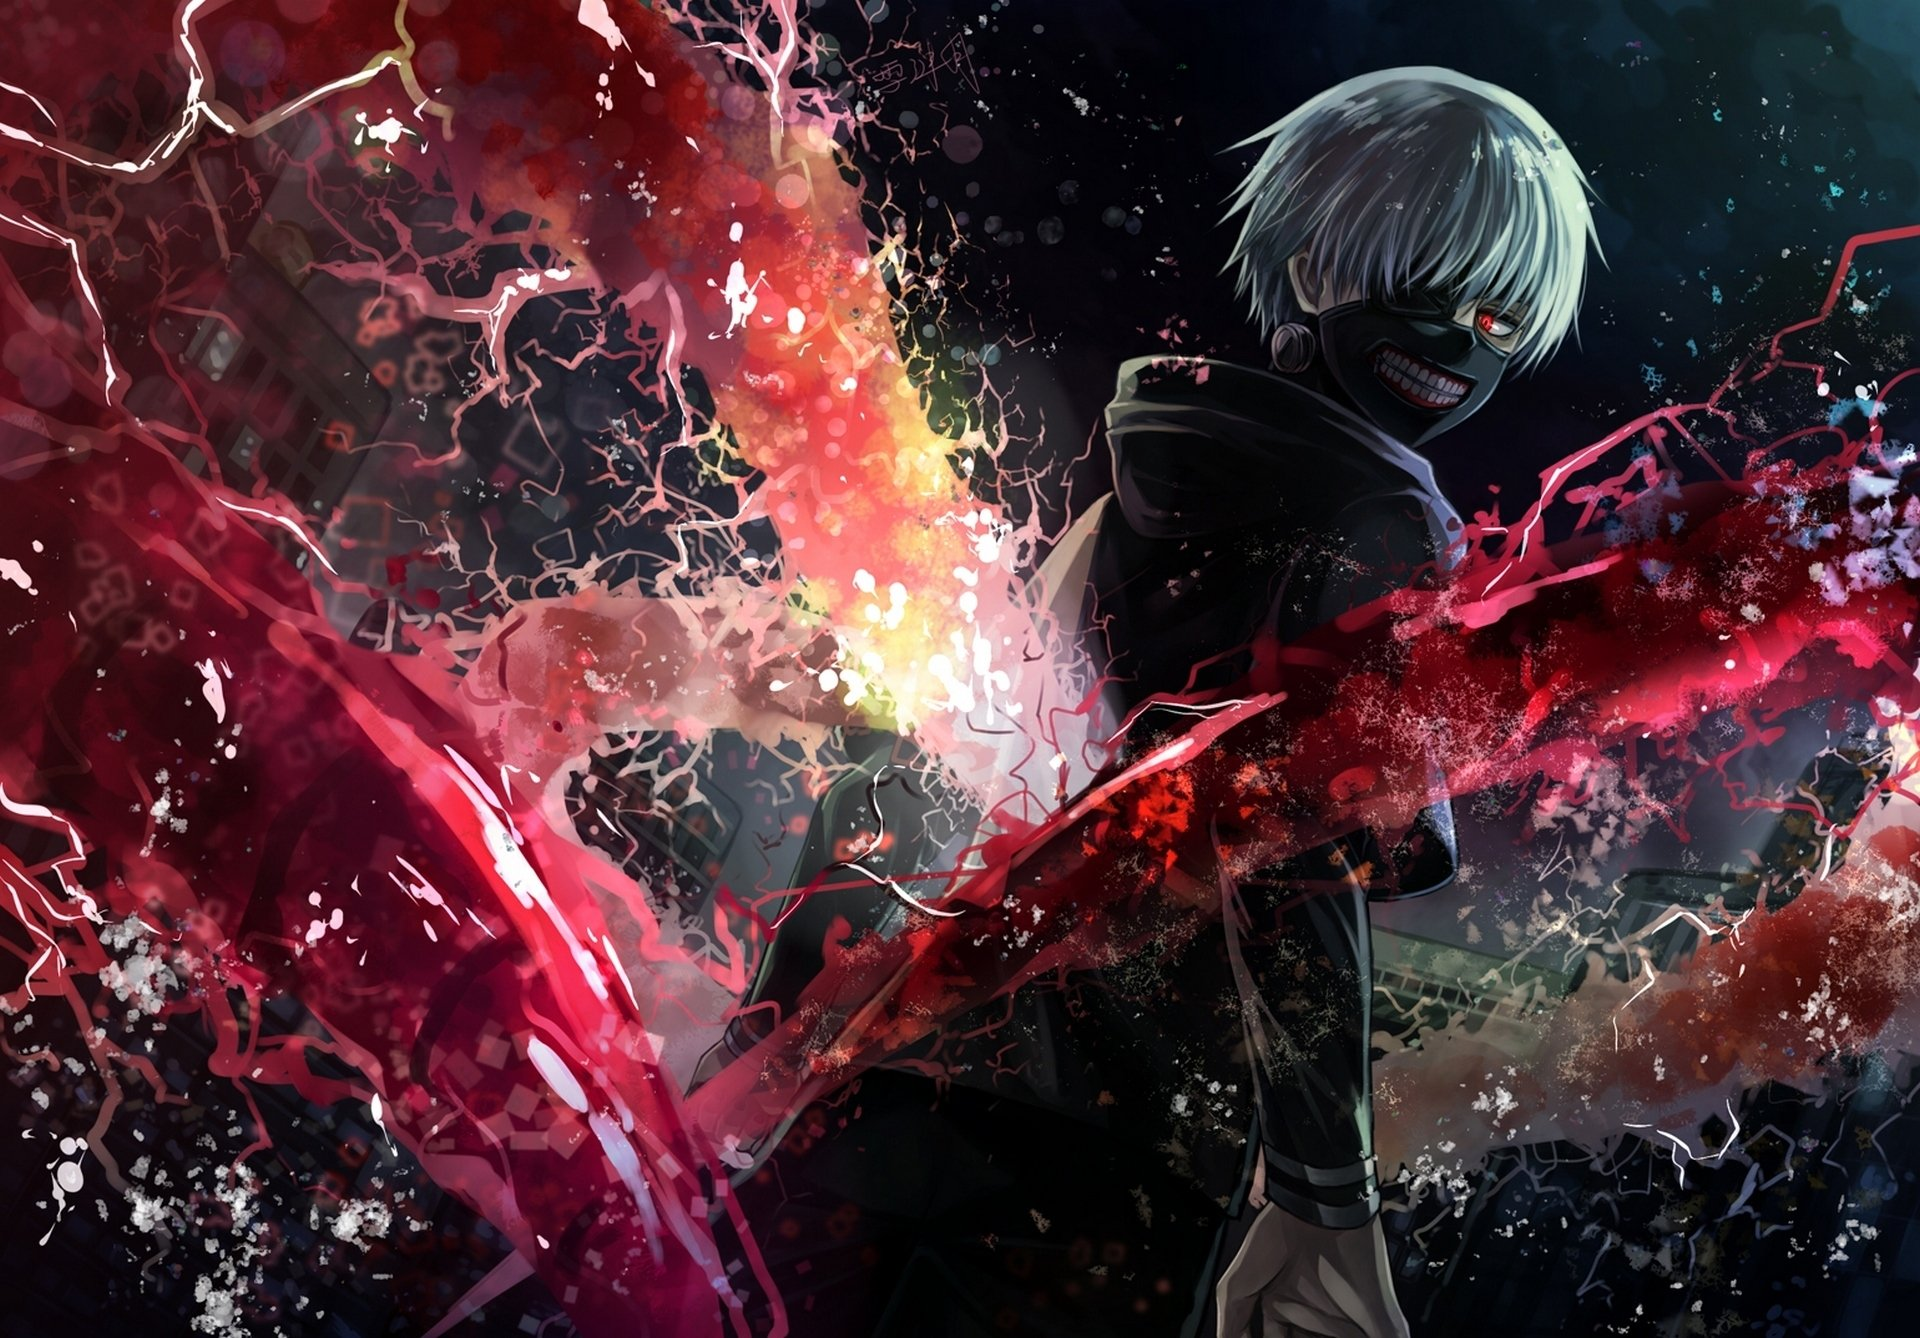 987 Tokyo Ghoul Hd Wallpapers Background Images